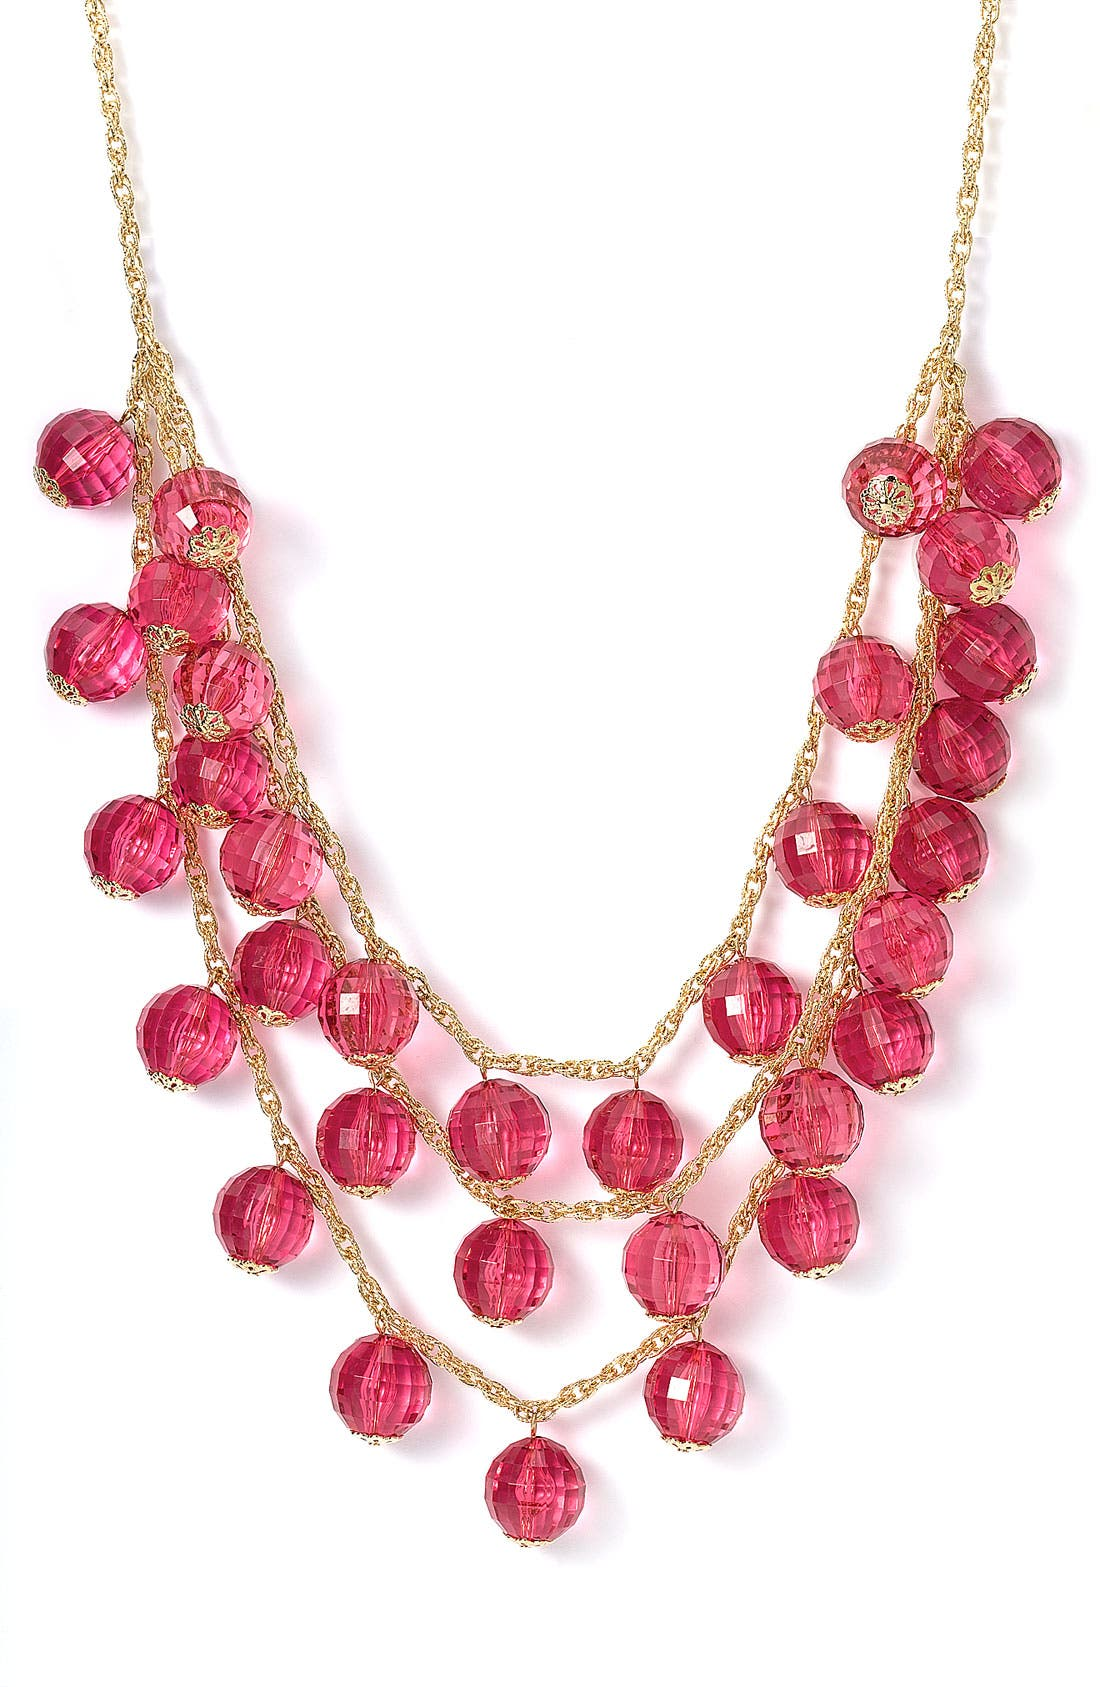 Alternate Image 1 Selected - kate spade 'gumdrops' long triple layer necklace